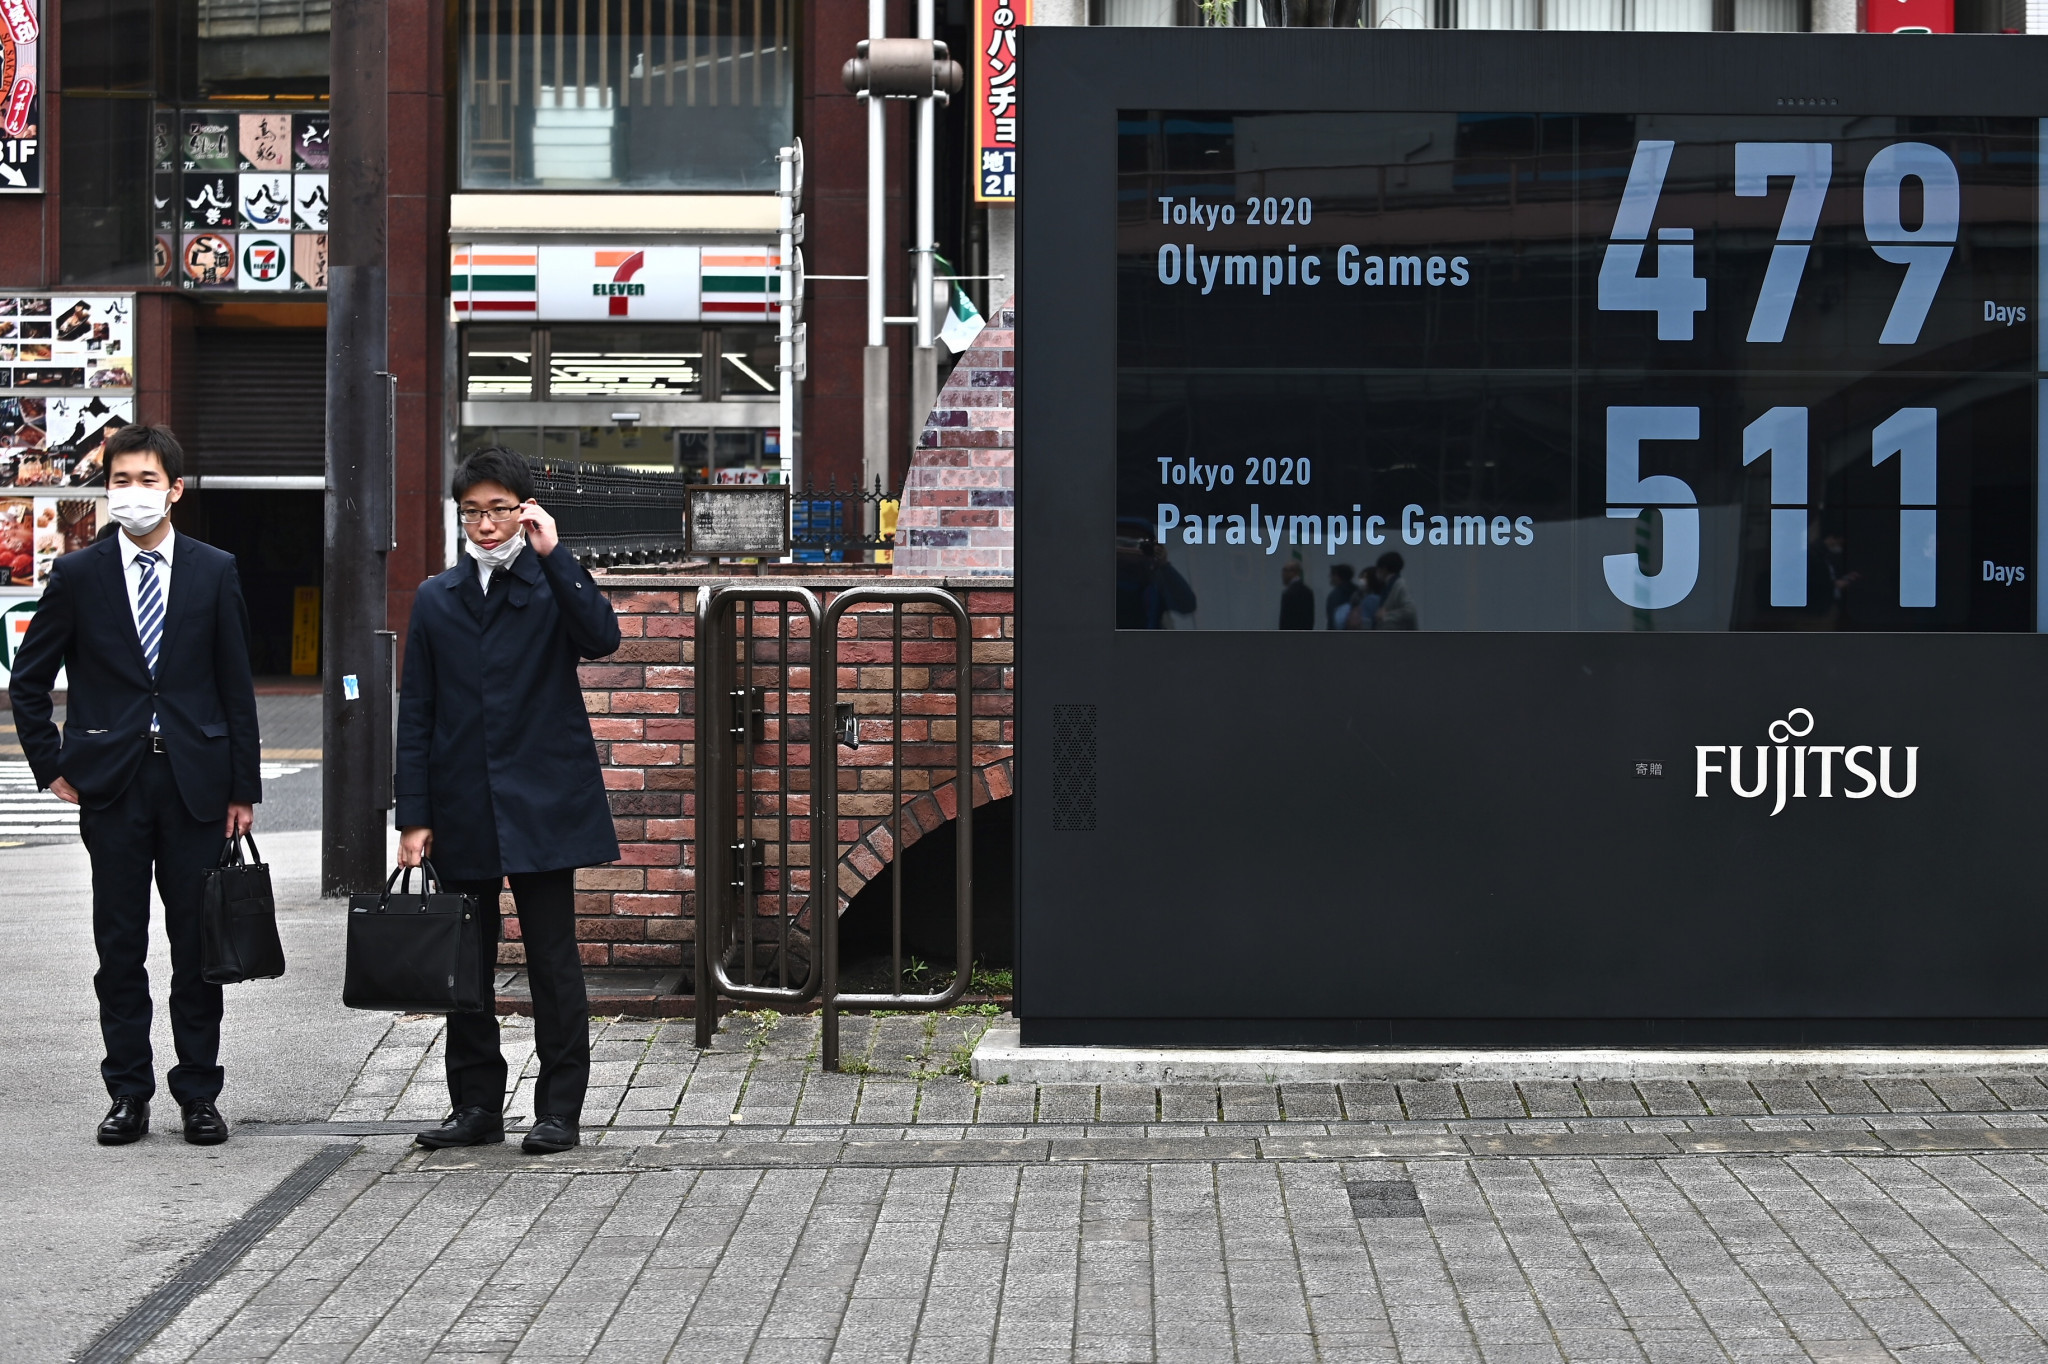 Athletes have welcomed confirmation of the new Tokyo 2020 dates ©Getty Images